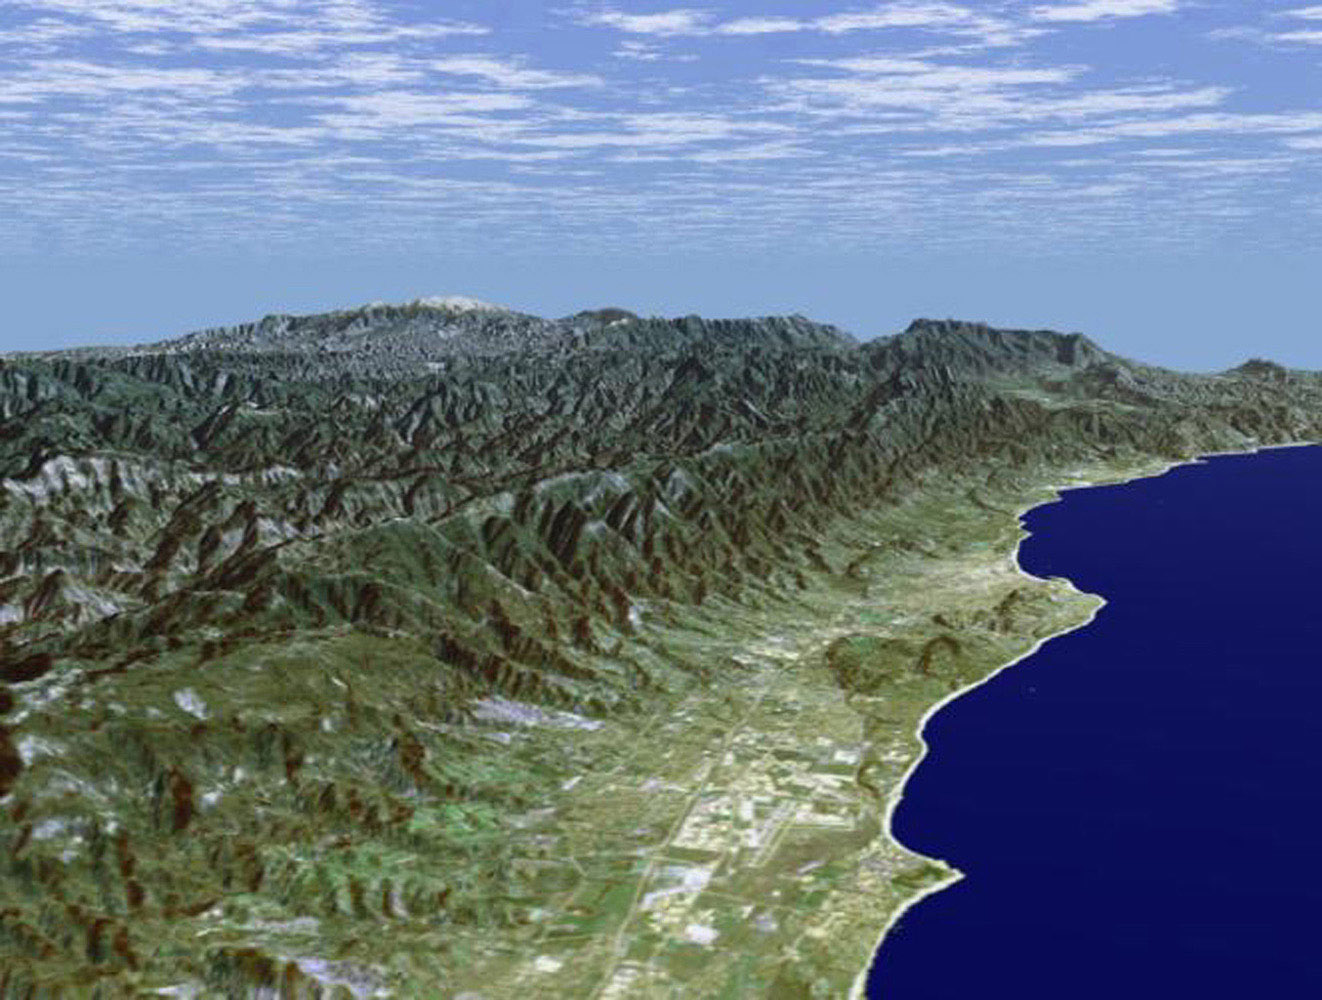 Santa Barbara, California, is often called 'America's Riviera' as seen in this image generated from NASA's Shuttle Radar Topography Mission data on February 16, 2000.